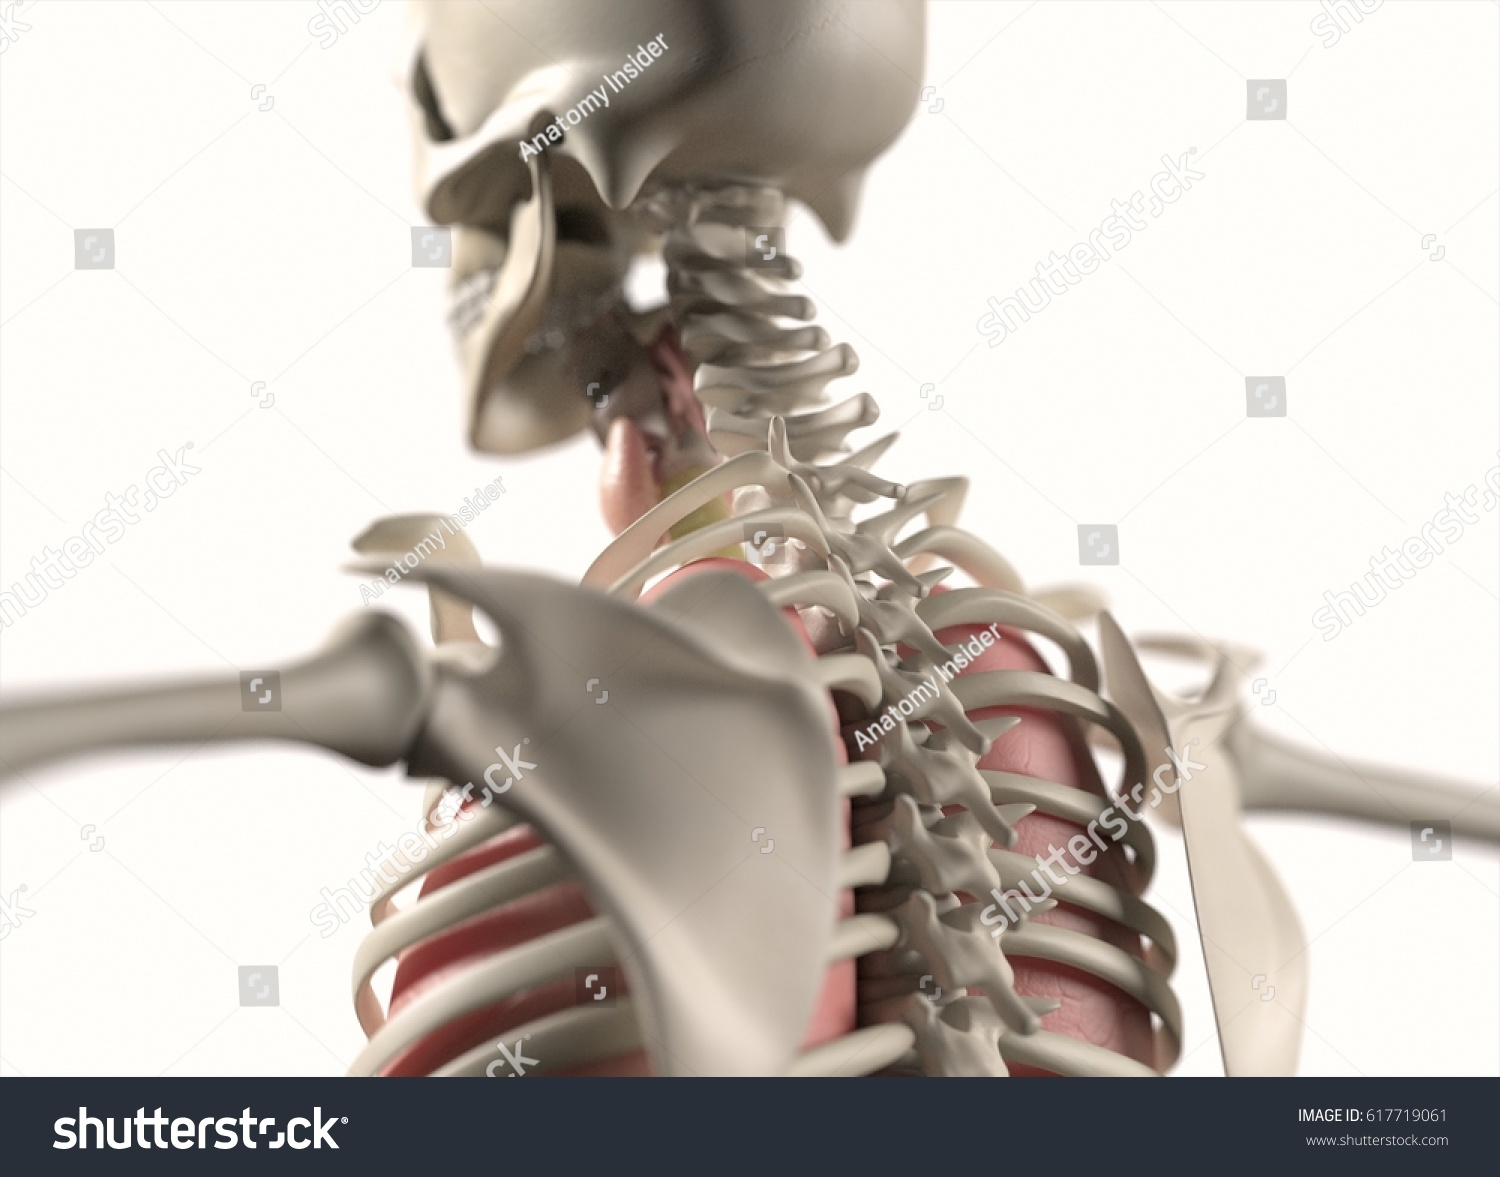 Anatomy Body Human Spine Neck Shoulder Stock Illustration 617719061